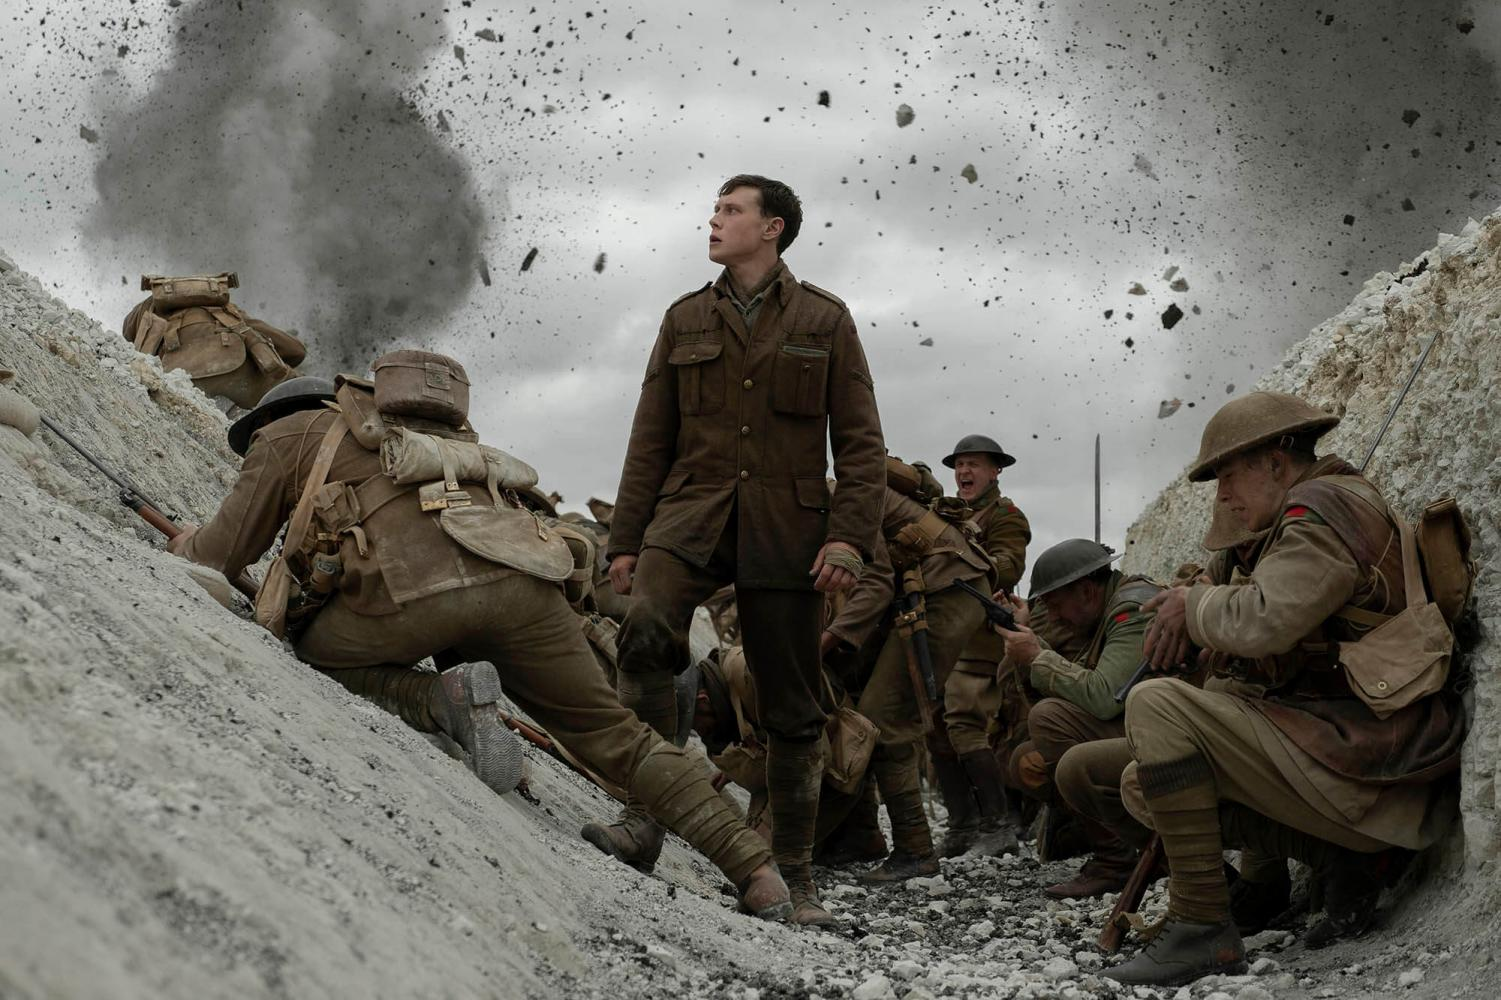 Lance Corporal William Schofield (George George MacKay) must complete a dire mission in delivery a message to call off an offensive attack and save hundreds of lives.  Courtesy of Universal Pictures